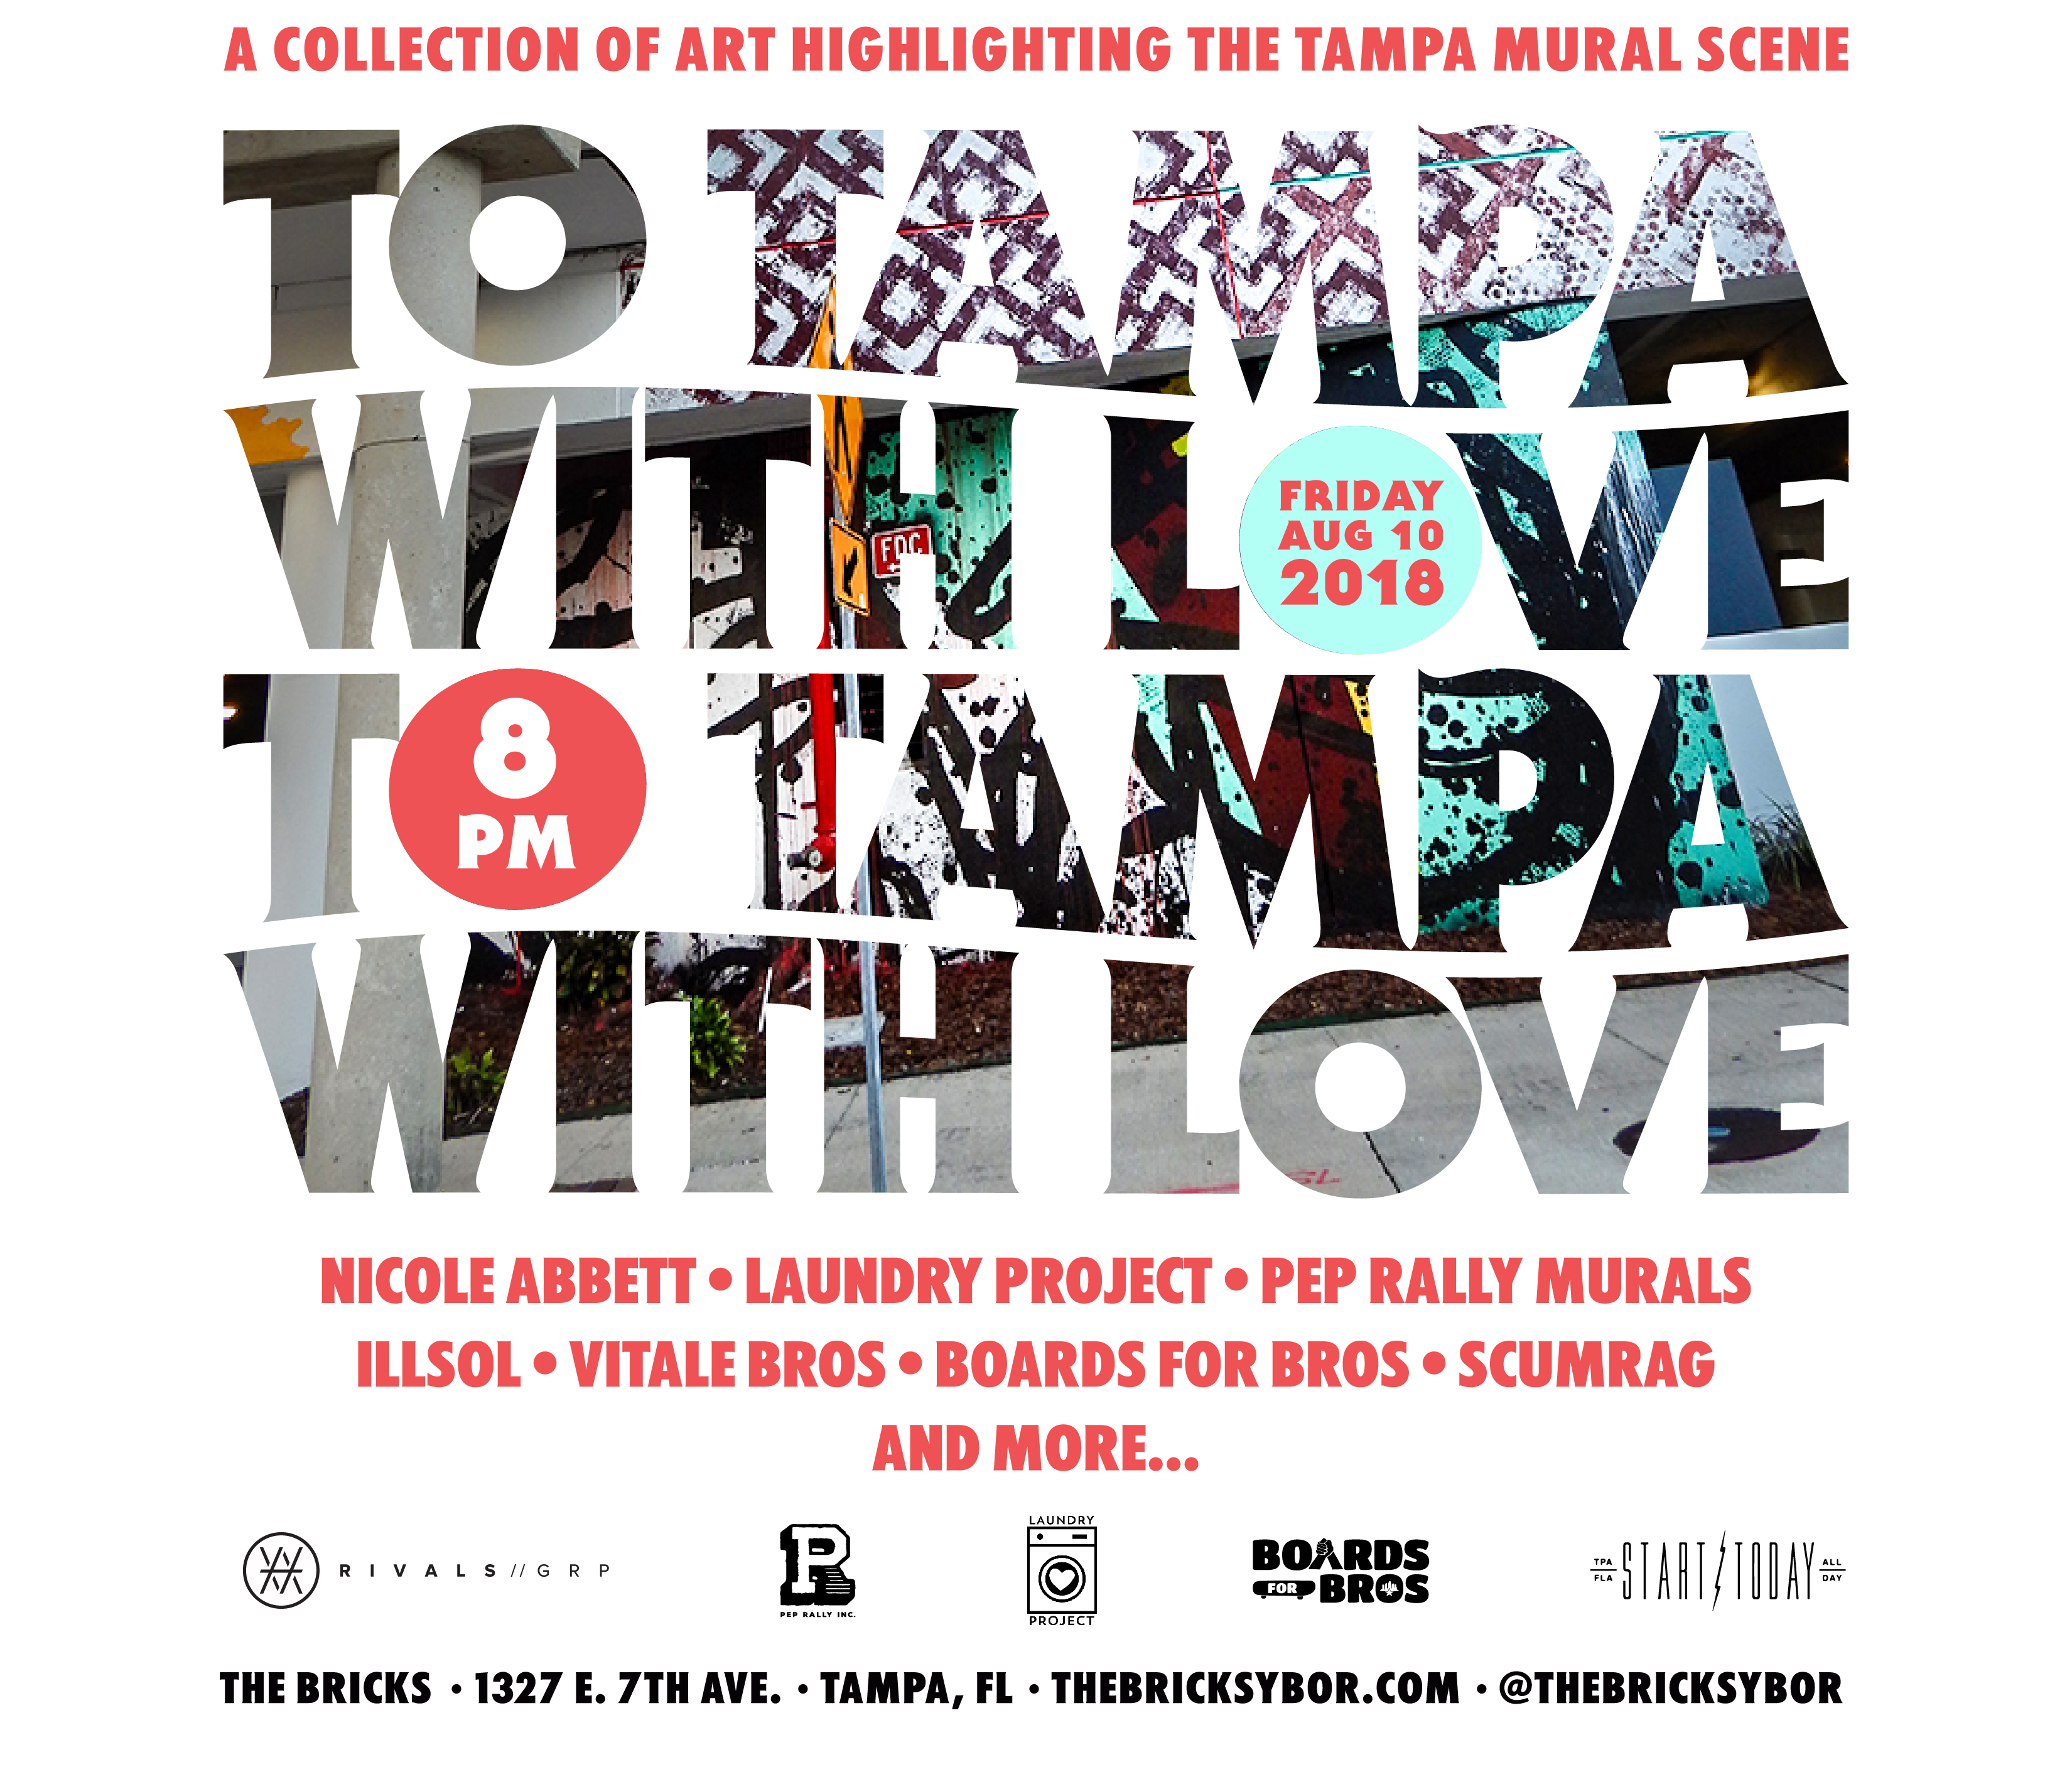 To Tampa with Love, an Art Show at The Bricks in Ybor City taking place August 10, 2018 at 8 PM